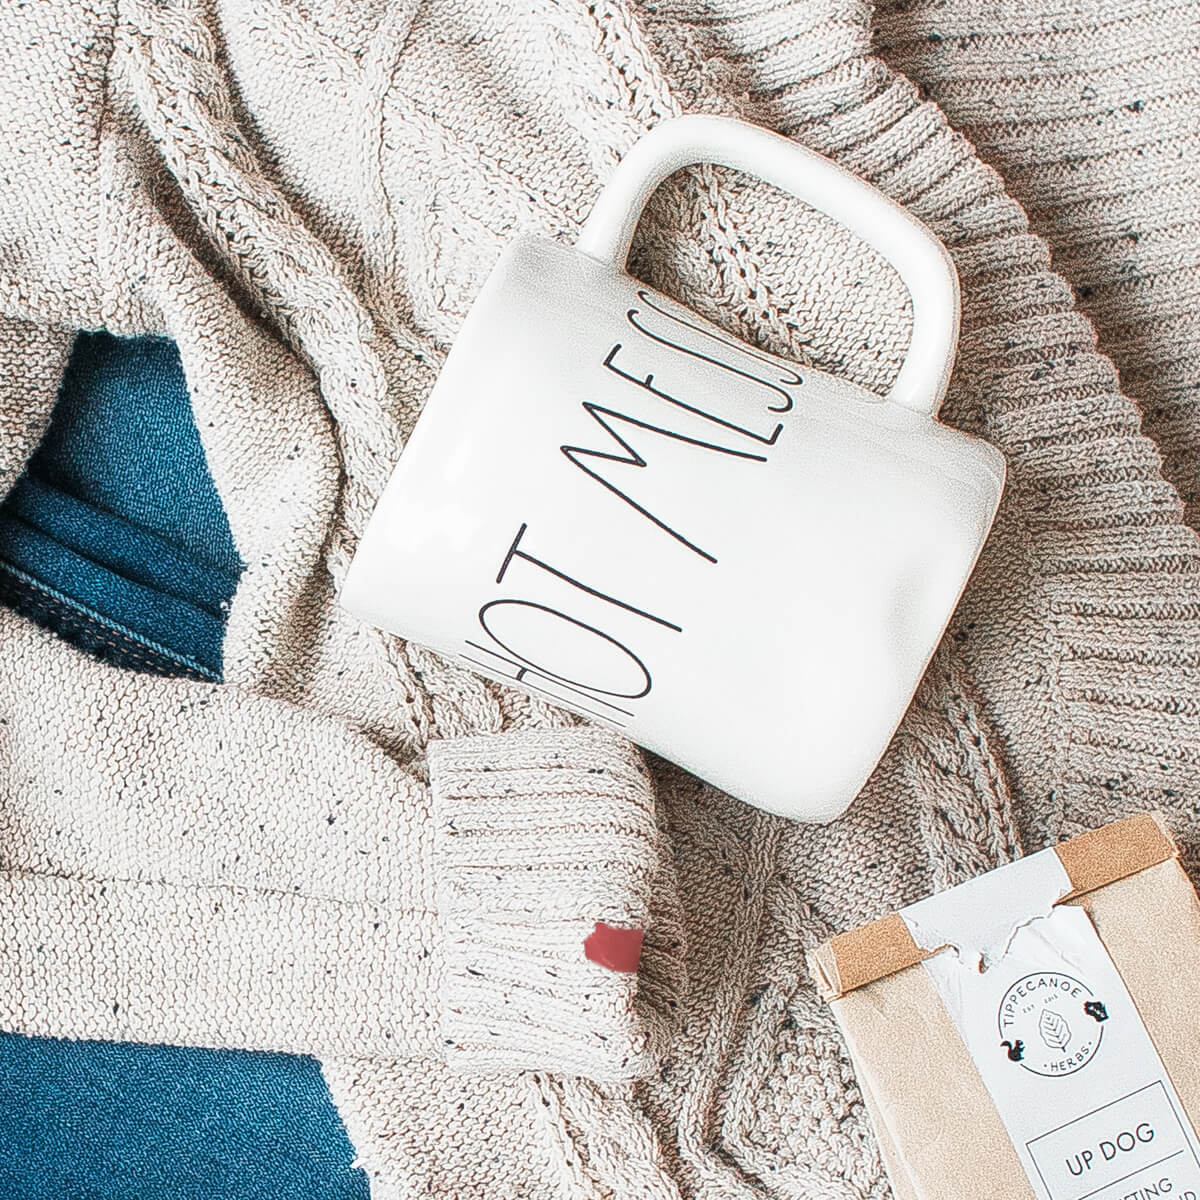 Knitted sweater with red nail polish on it, blue jeans, coffee mug